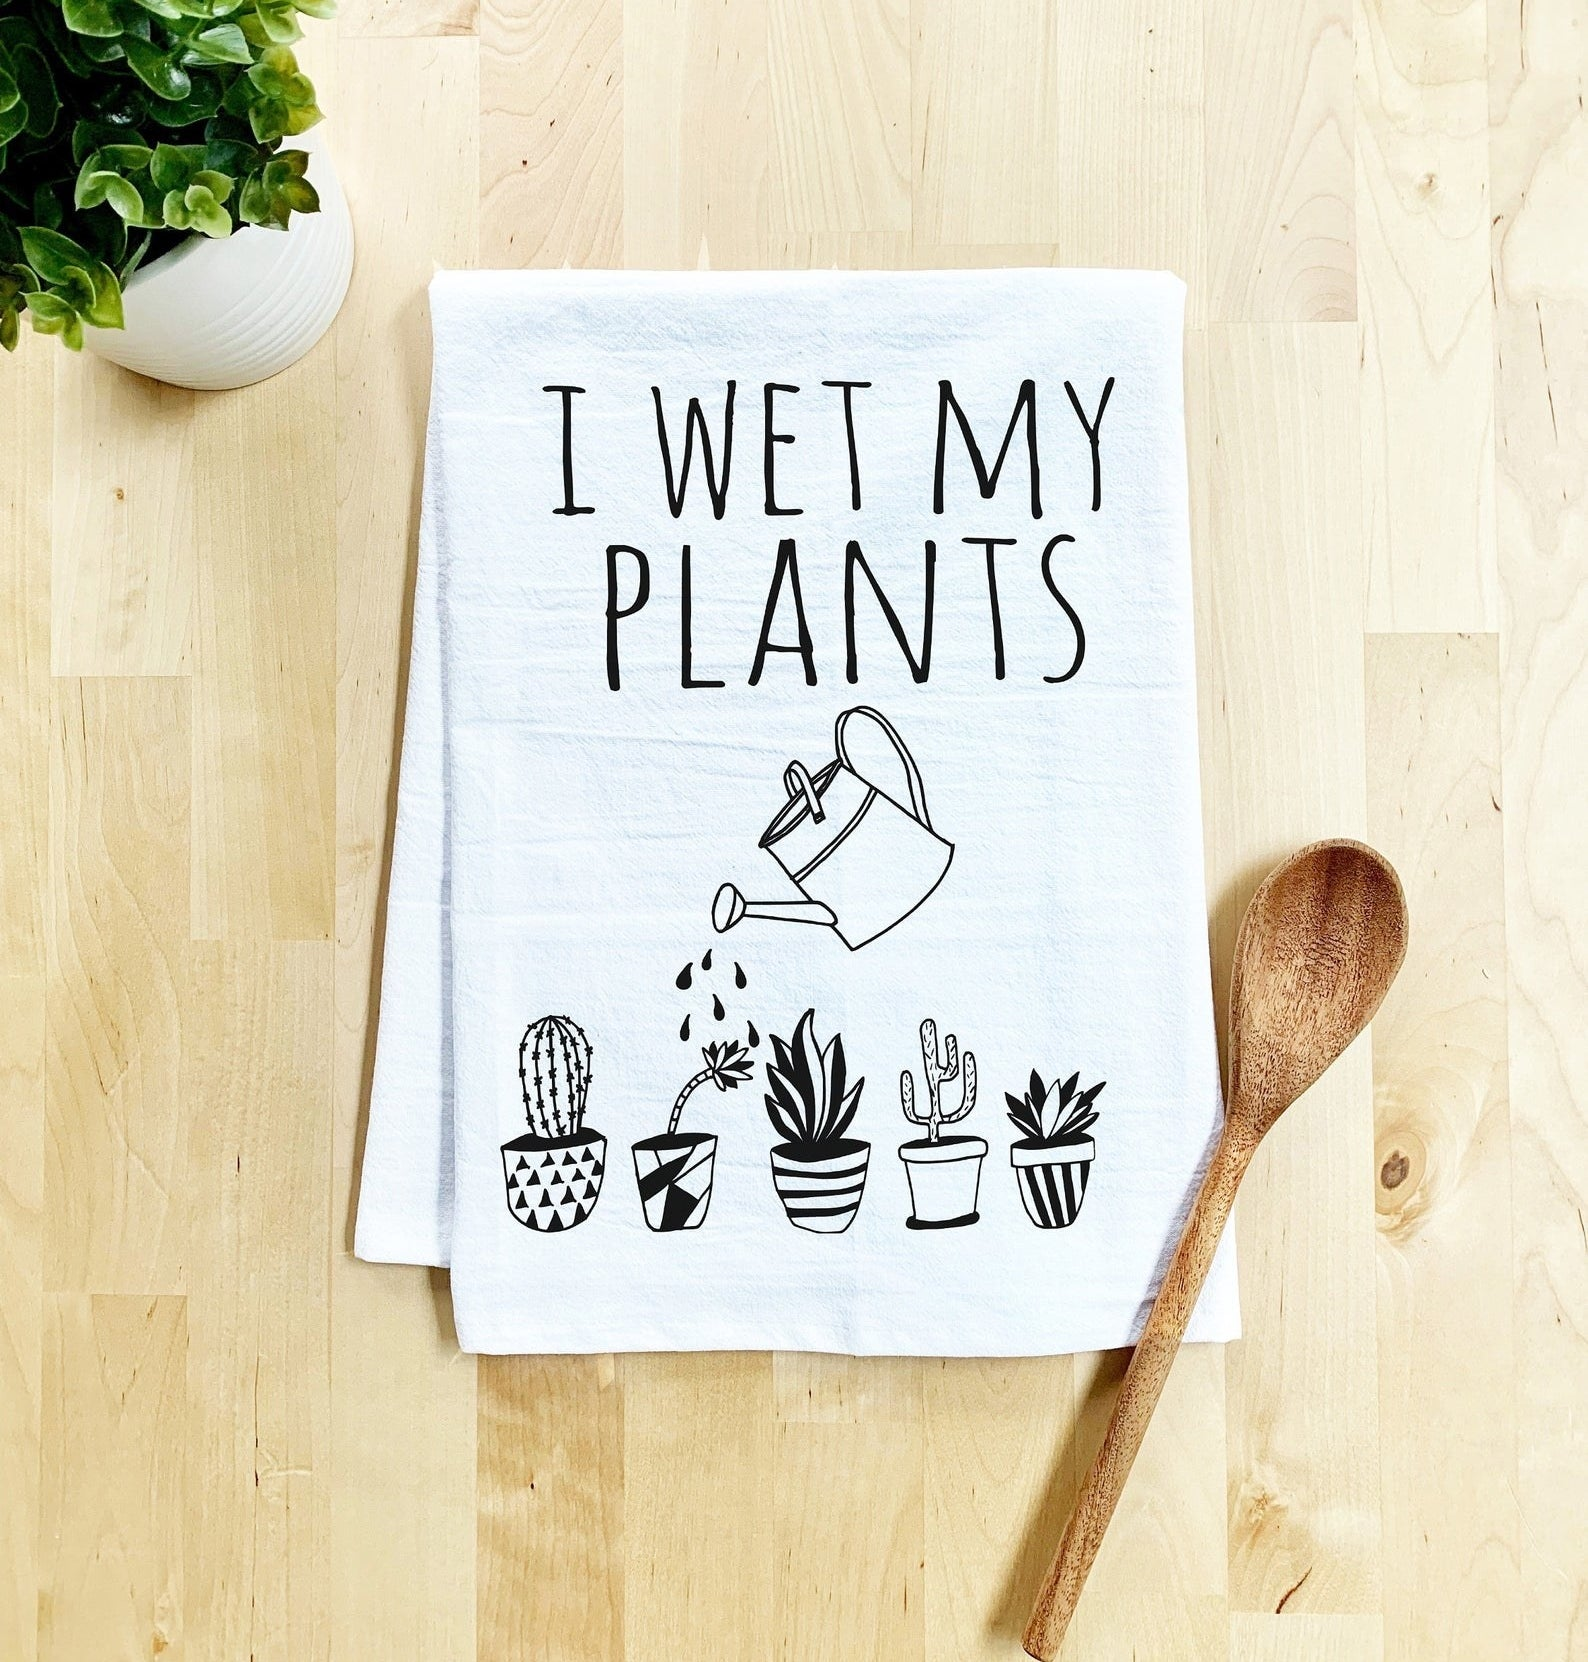 """White flour sack towel with black print of five small plants, a watering can, and the words """"I wet my plants"""""""